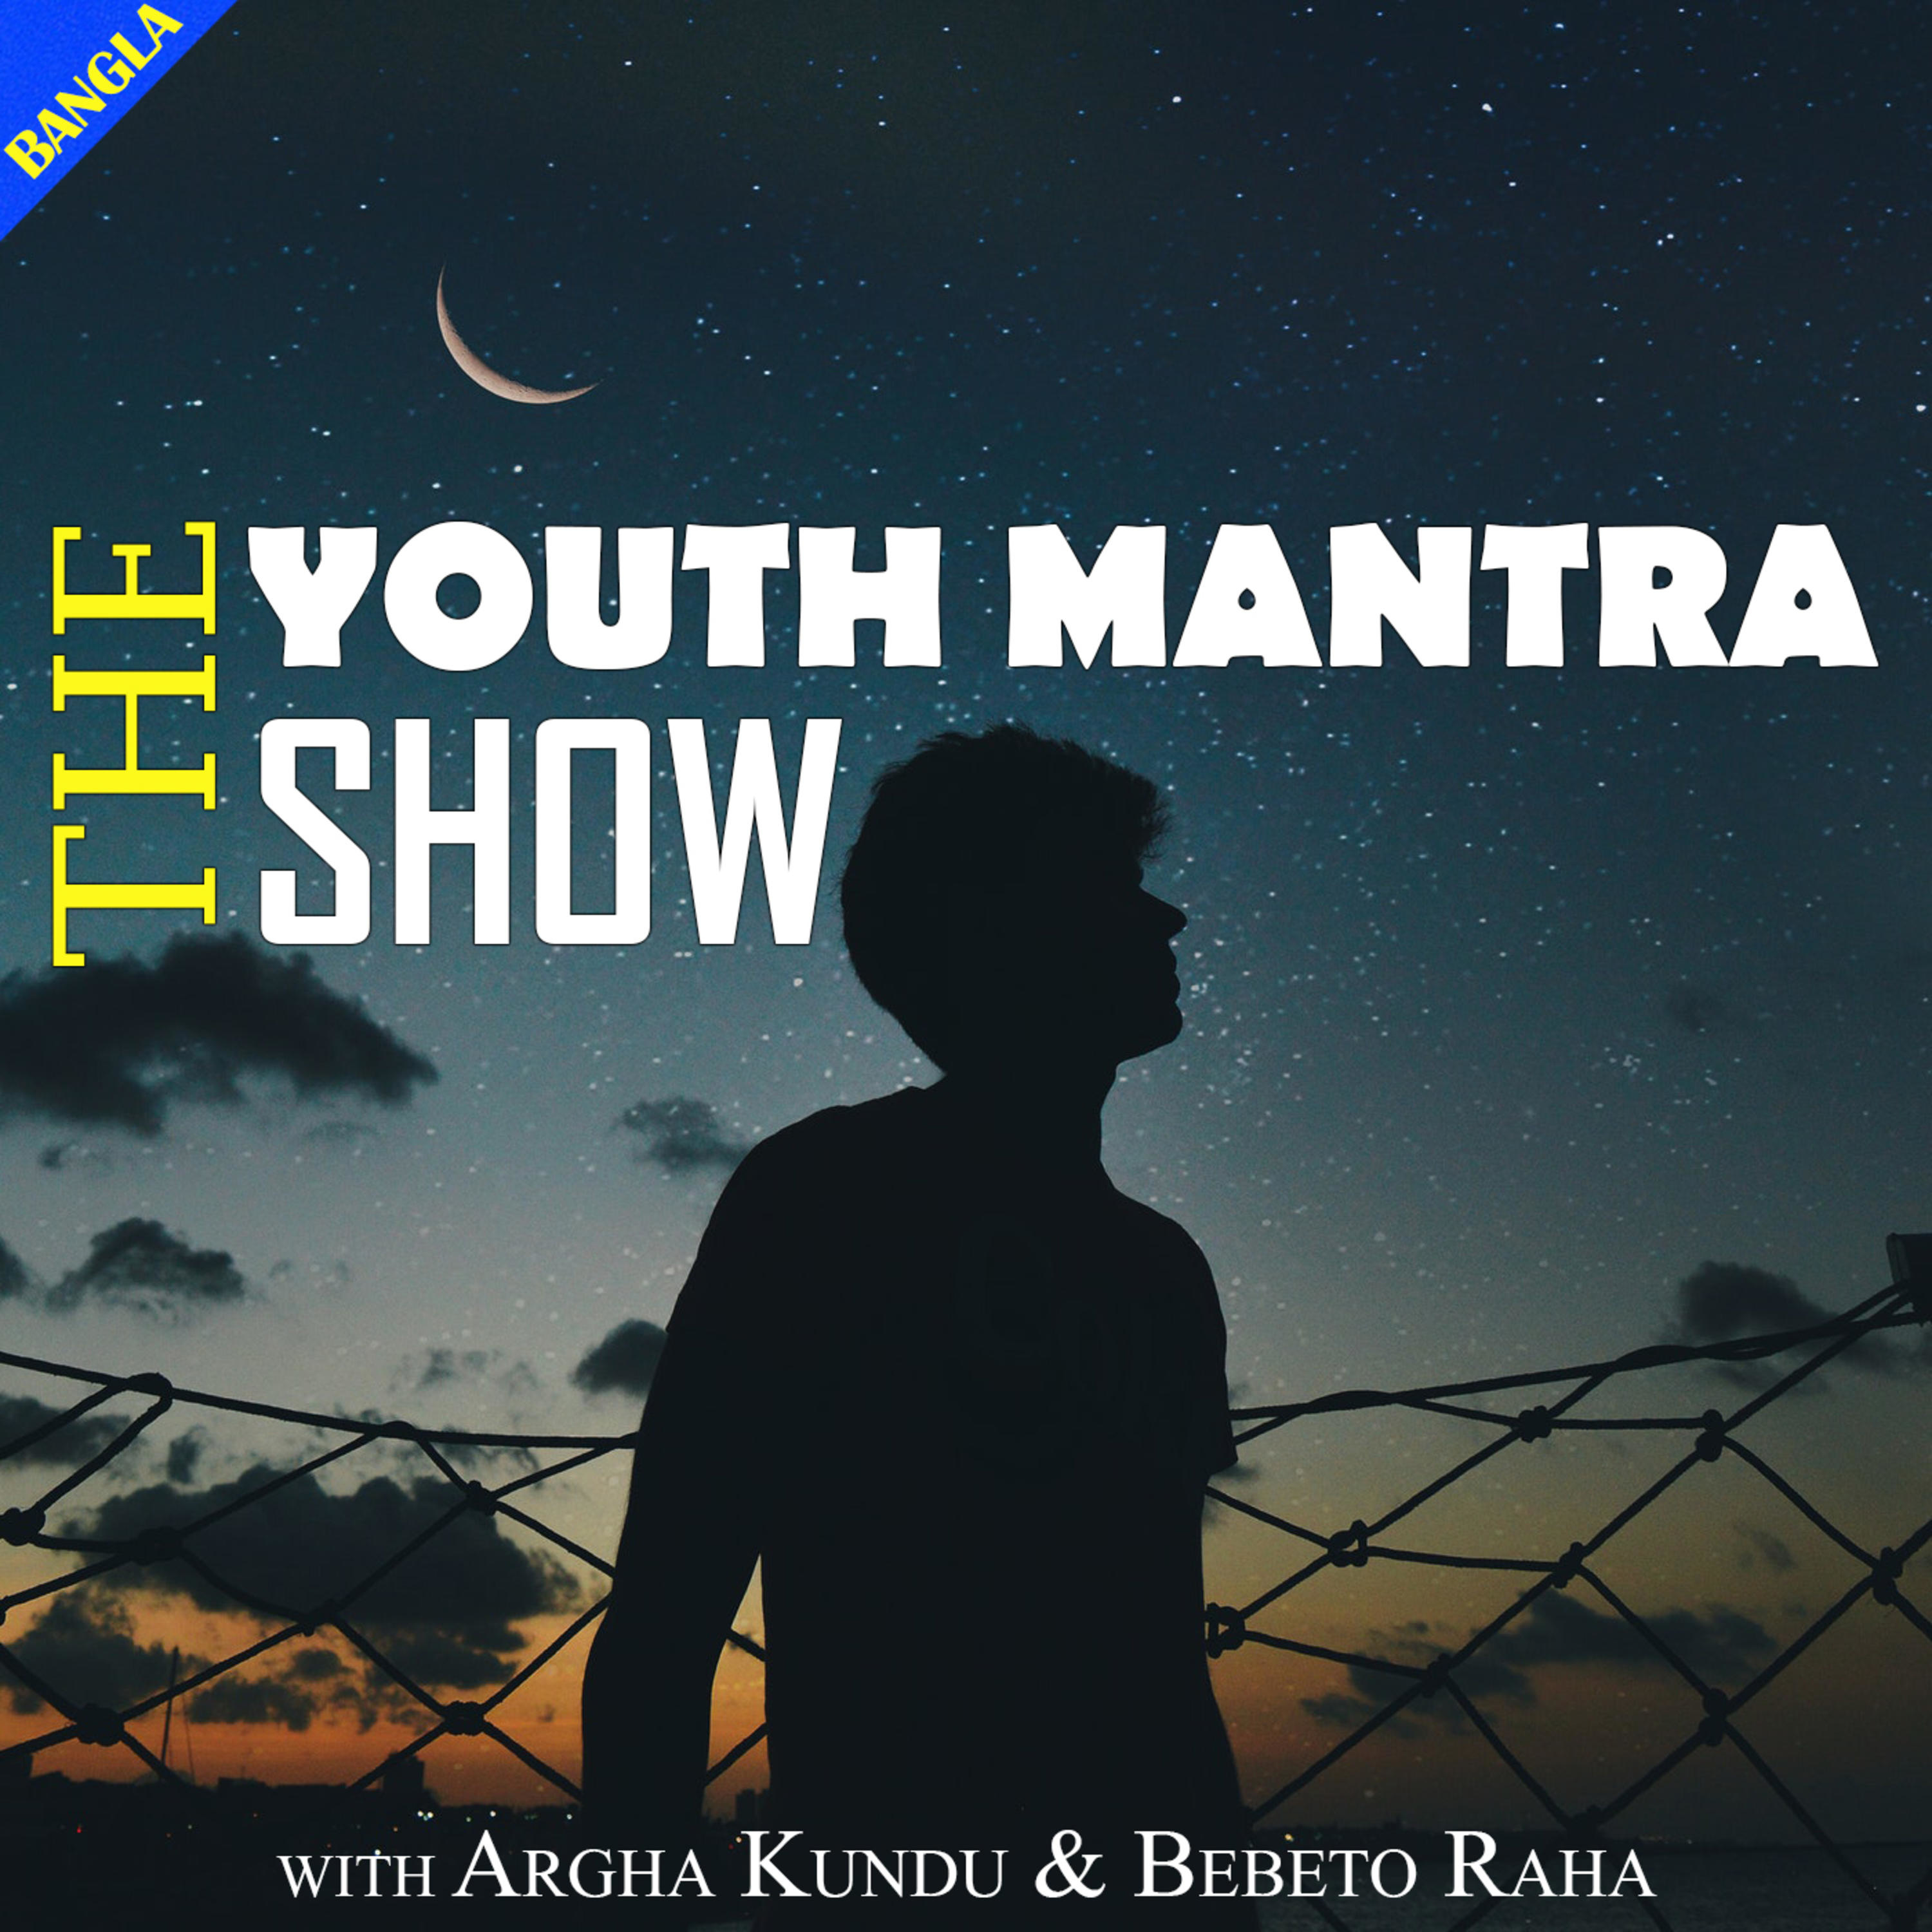 The Youth Mantra Show | Listen via Stitcher for Podcasts